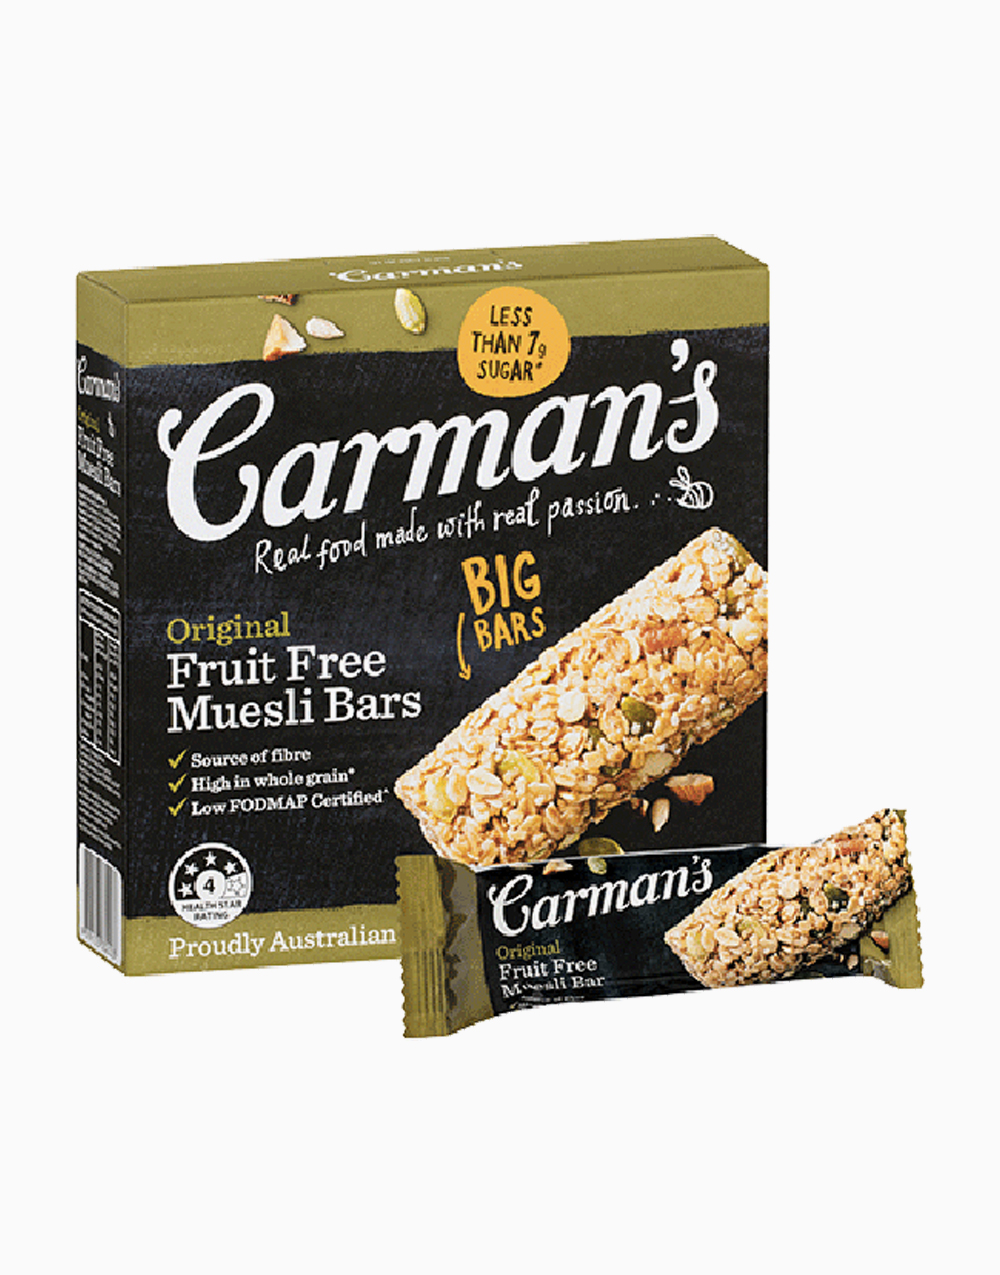 Fruit Free Muesli Bar (45g x 6pcs) by Carman's